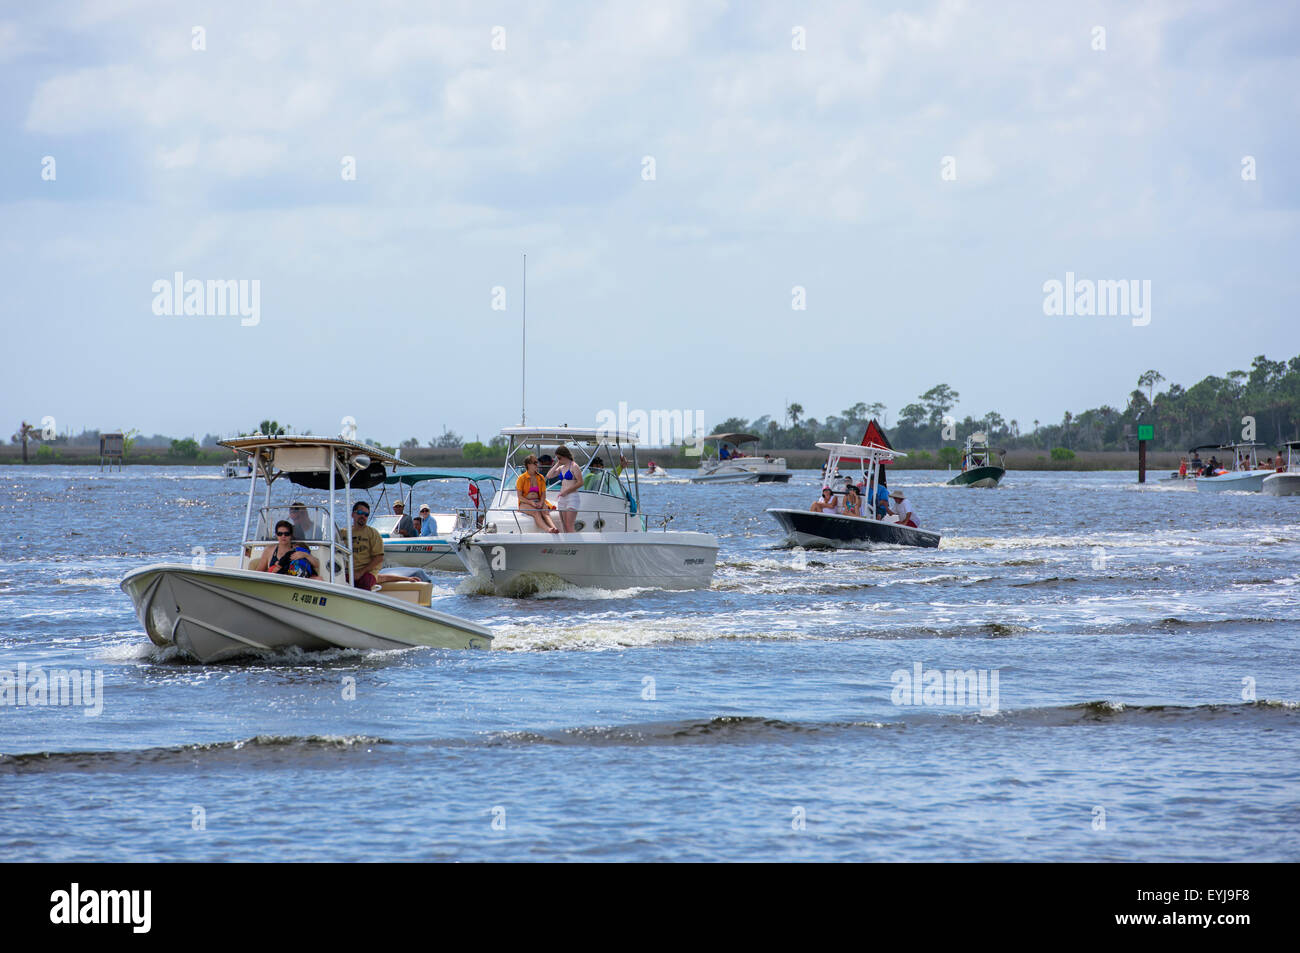 Recreational boat traffic on Steinhatchee River, Steinhatchee, FL - Stock Image